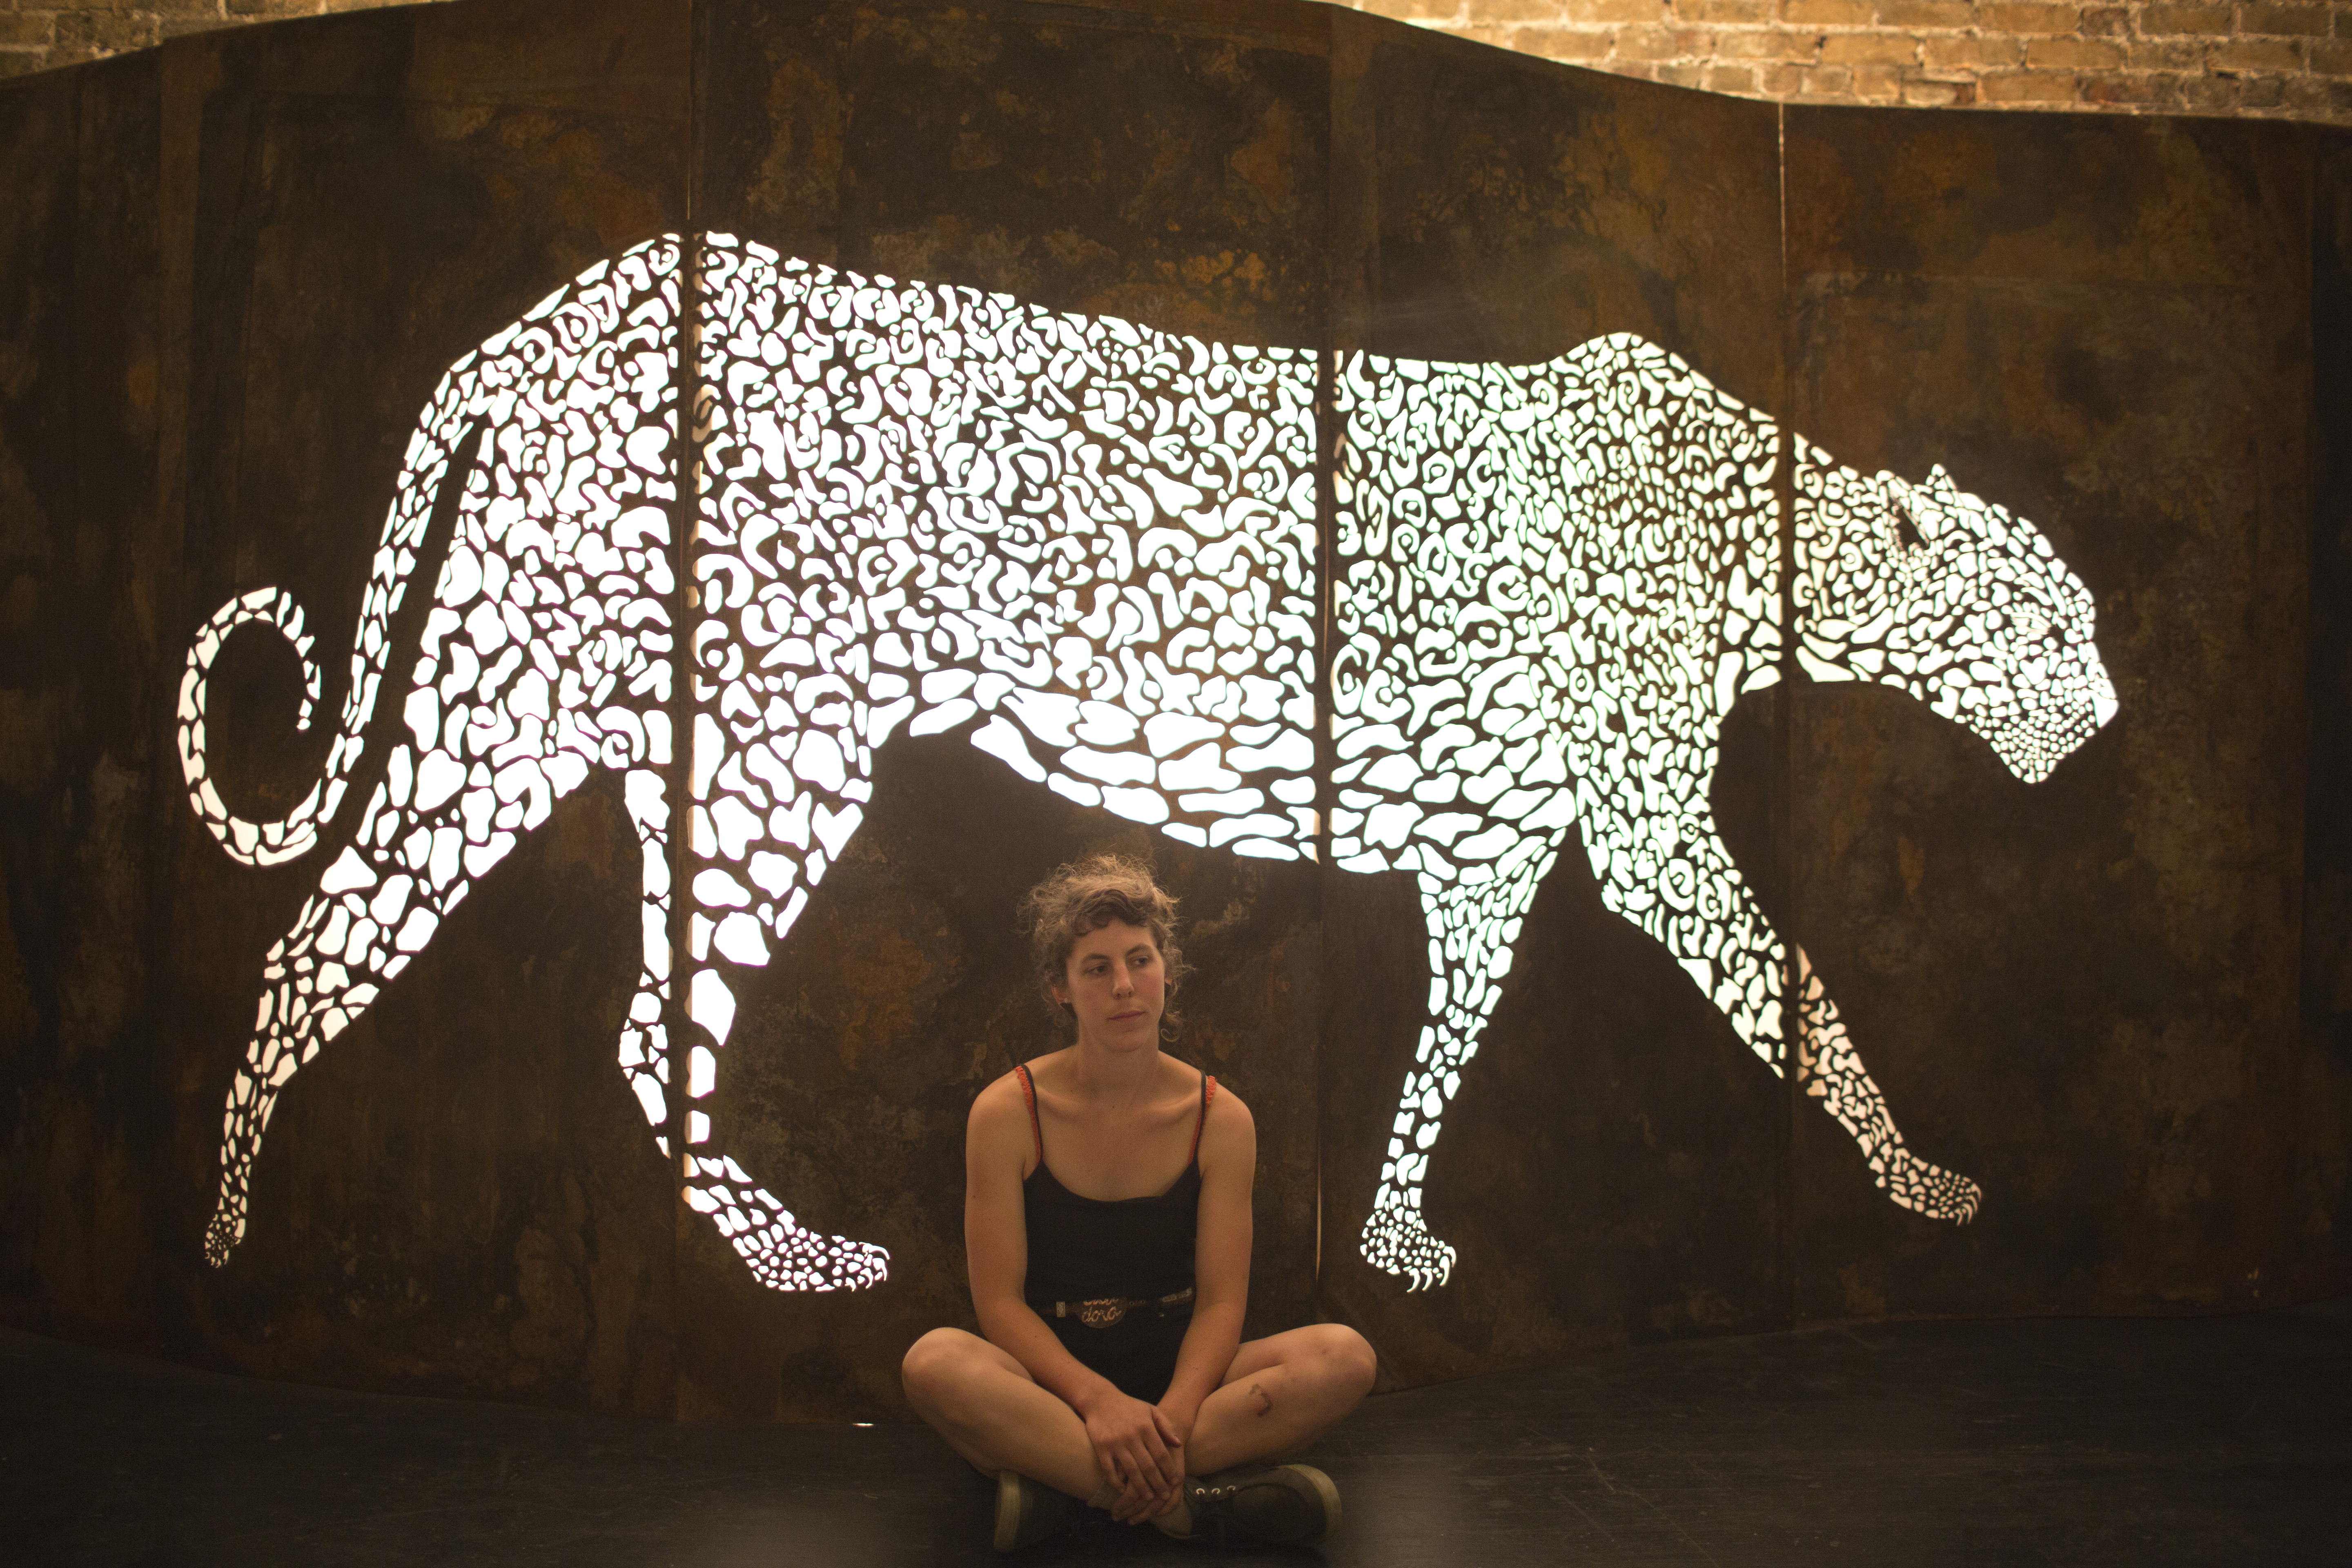 Artist seated in front of an illuminated metal art piece of a leopard